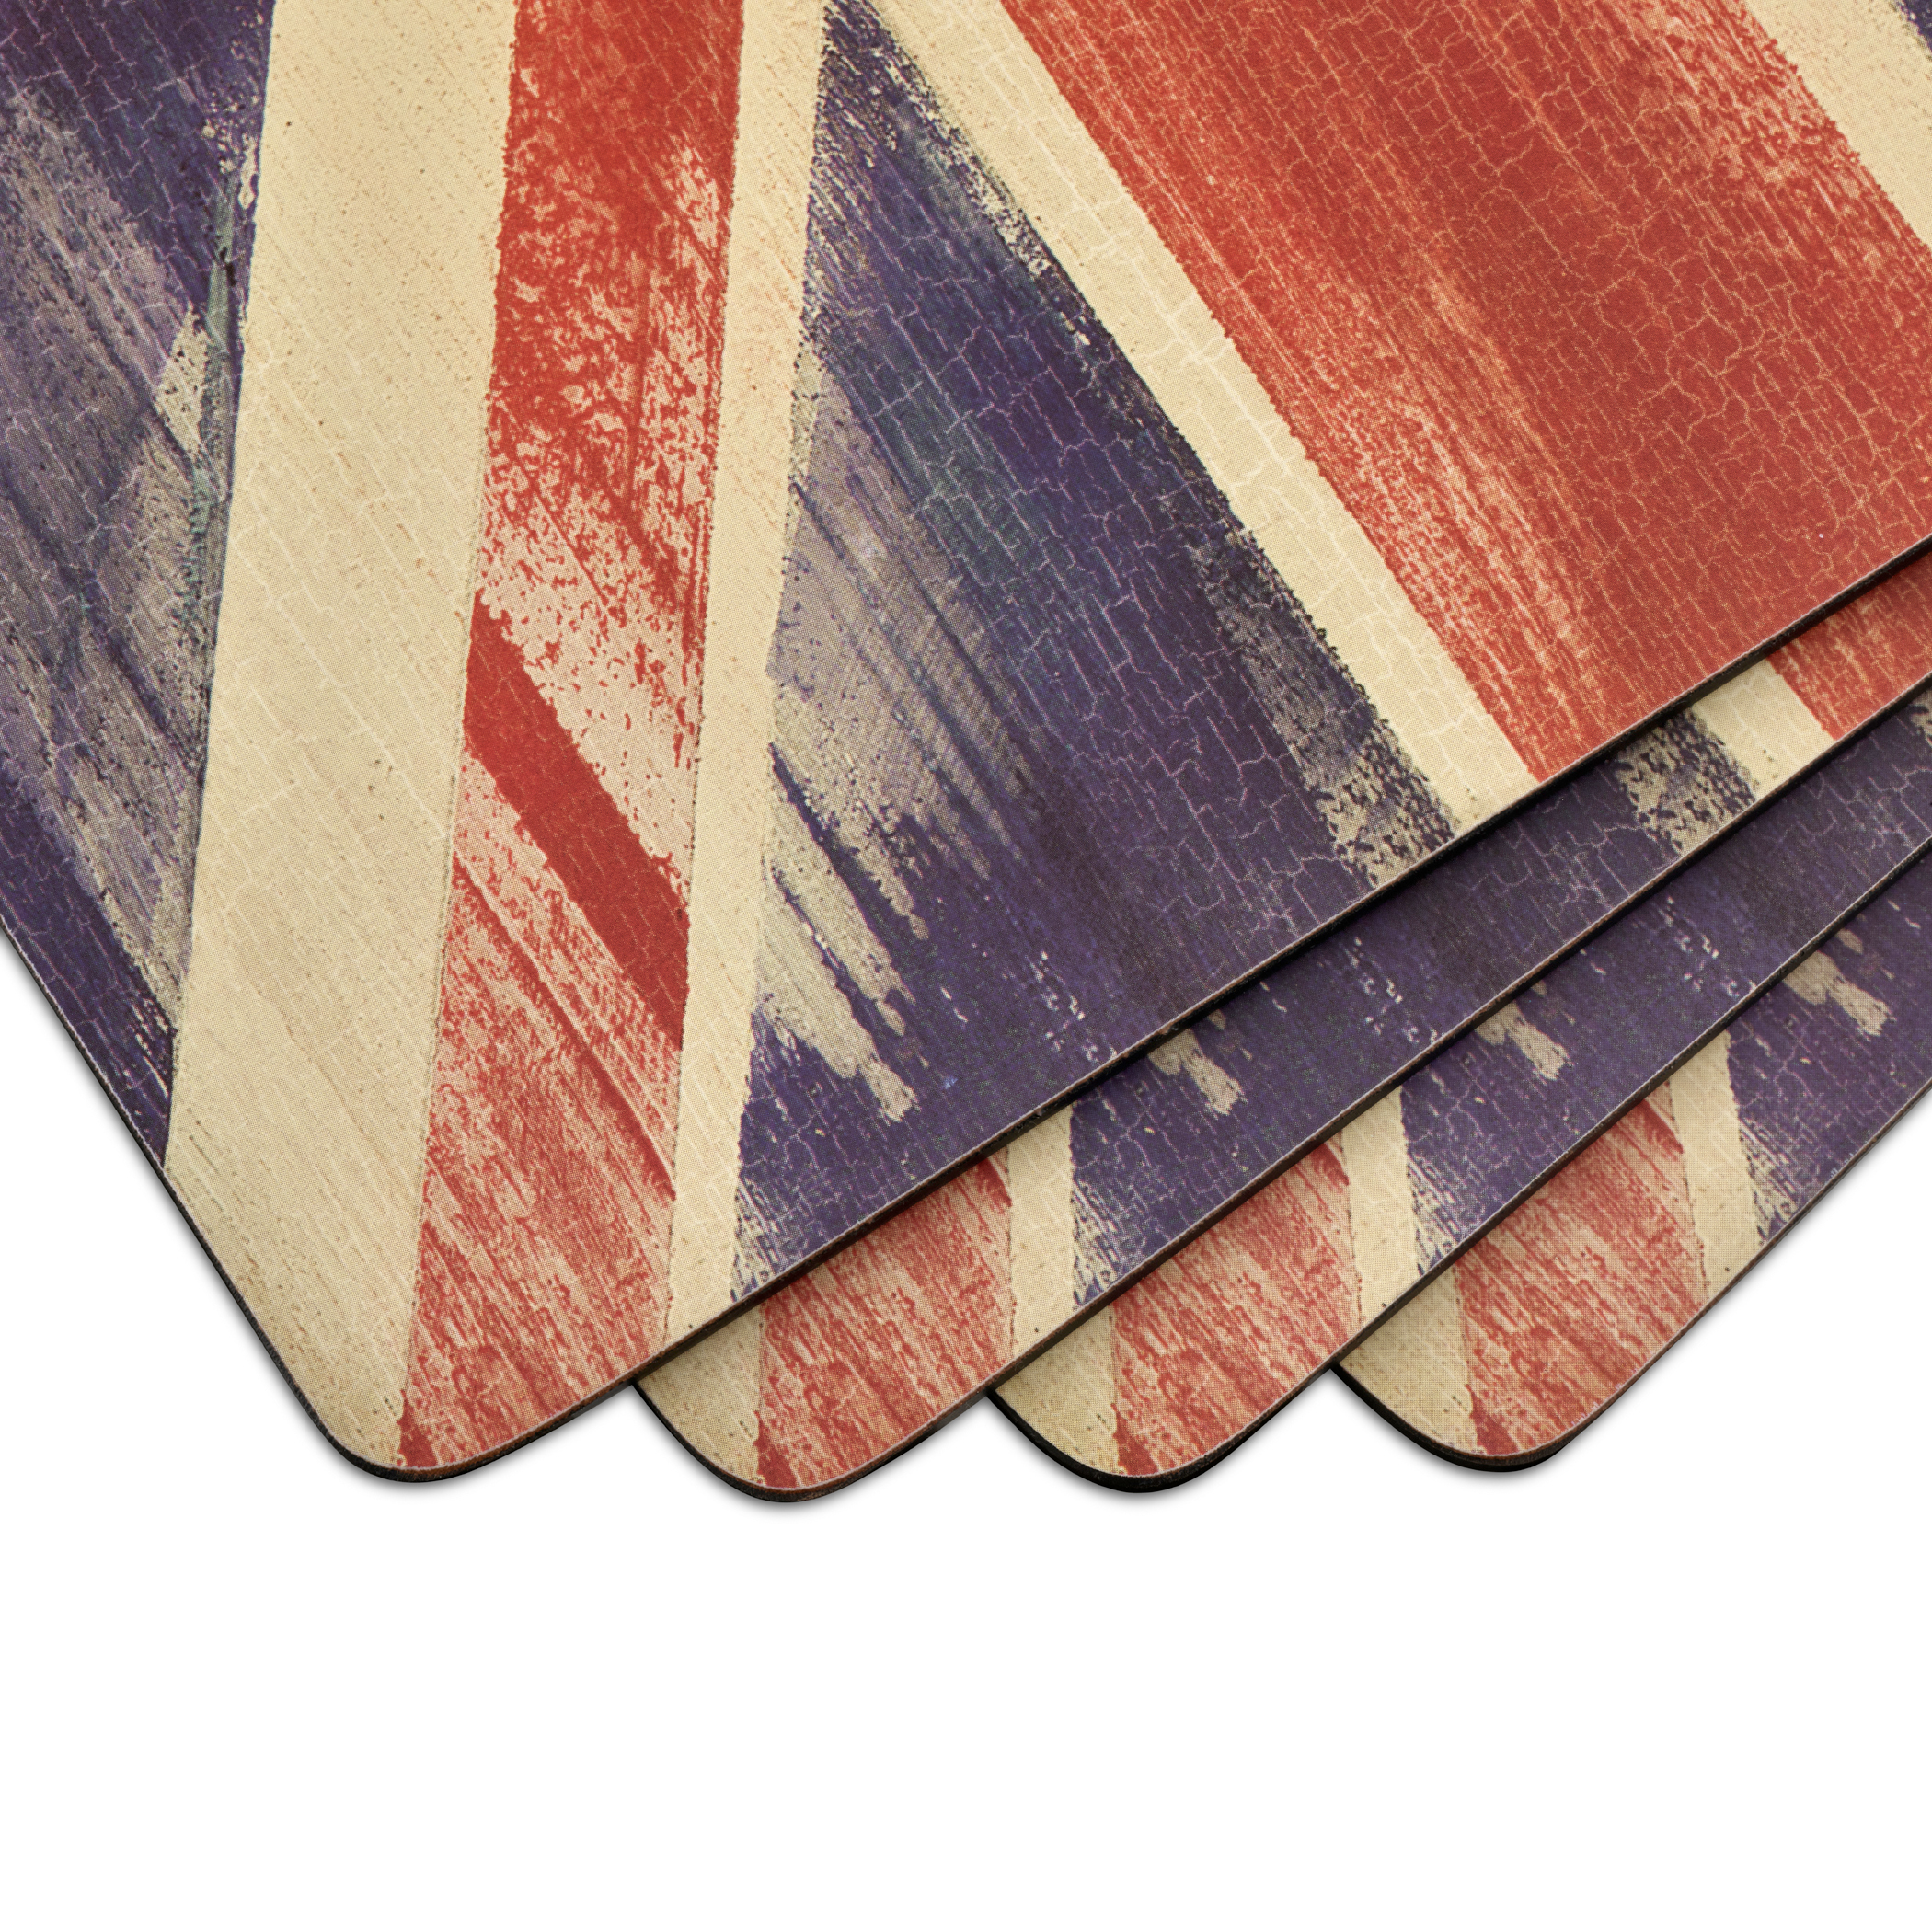 Pimpernel Union Jack Placemats Set of 4 image number 1